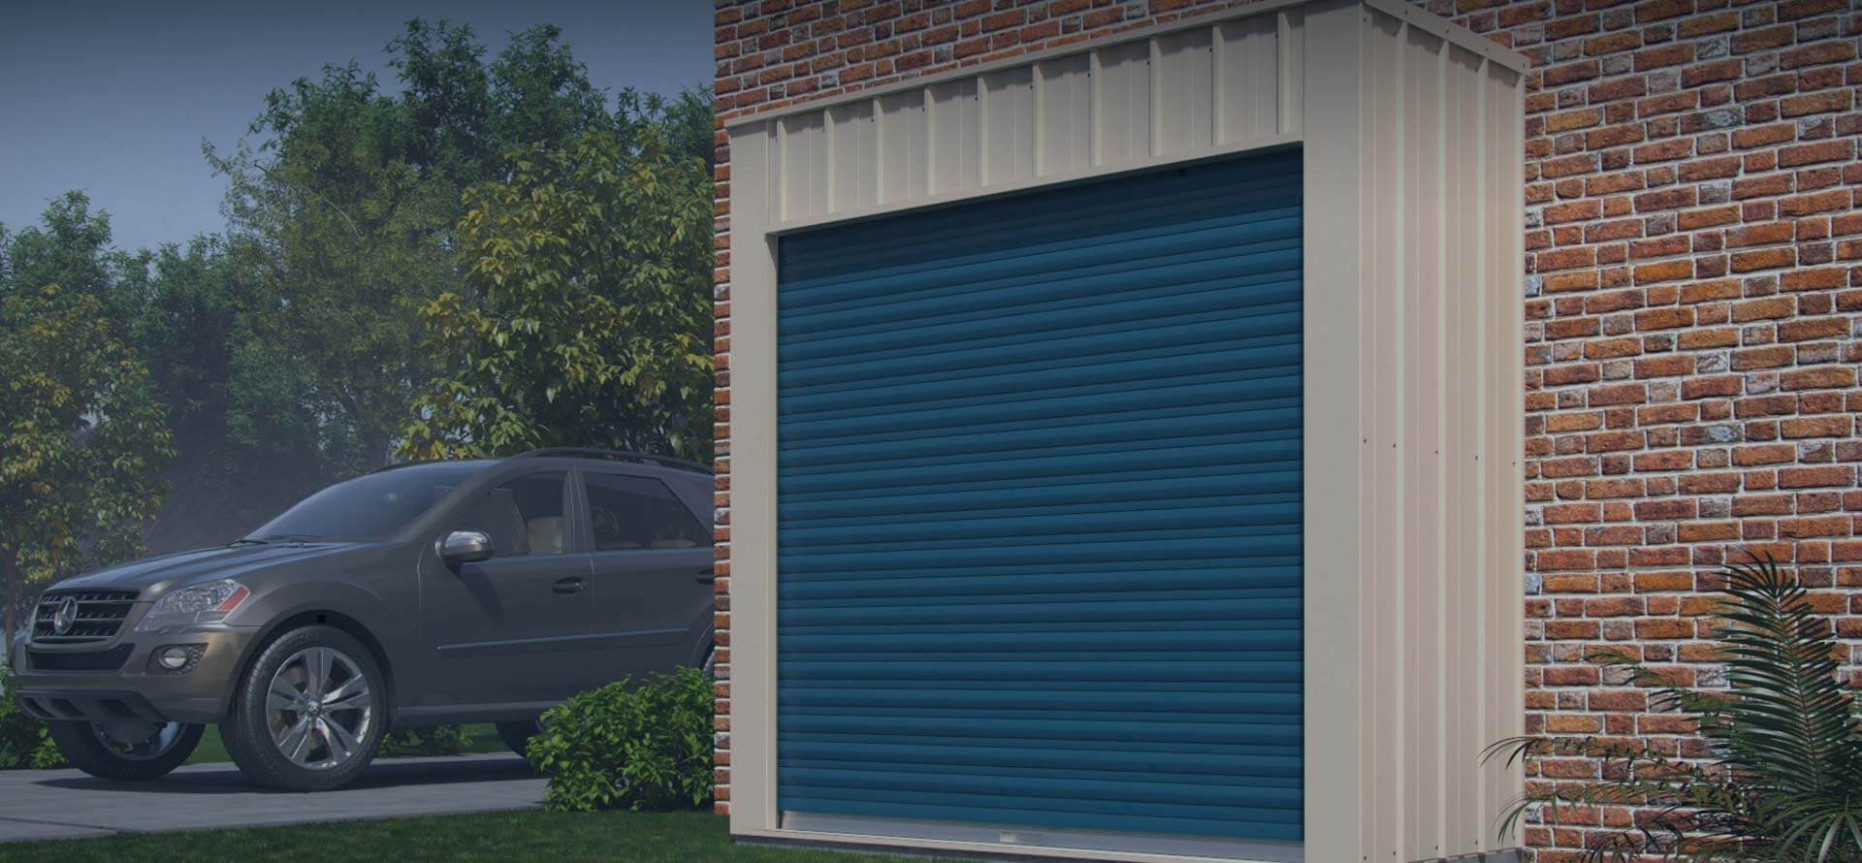 Sheds And Garages Guaranteed By Titan Garages & Sheds Carports And Garages For Sale Near Me